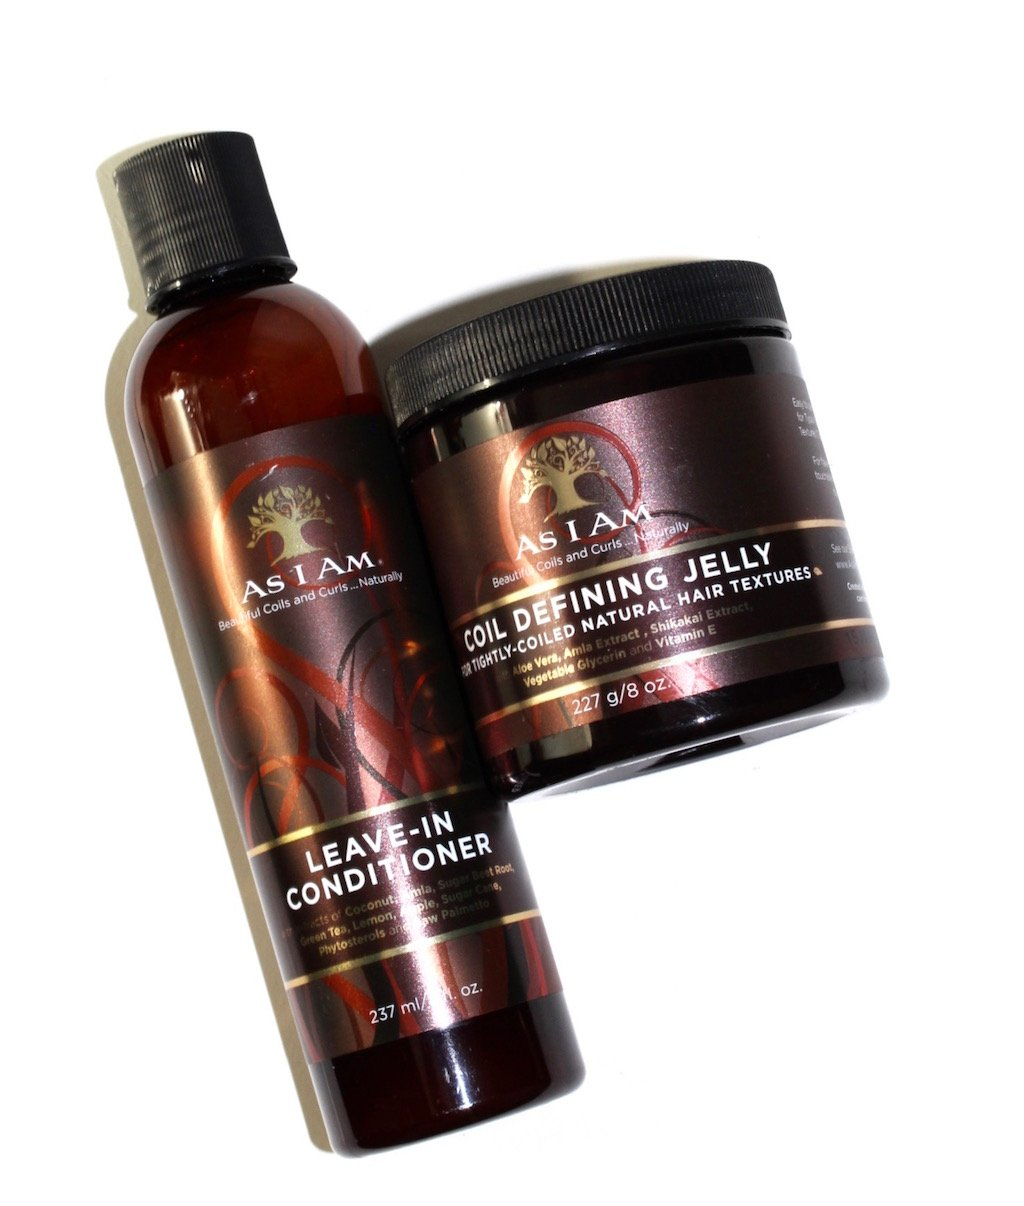 As I Am Coil Defining Jelly and Leave-In Conditioner